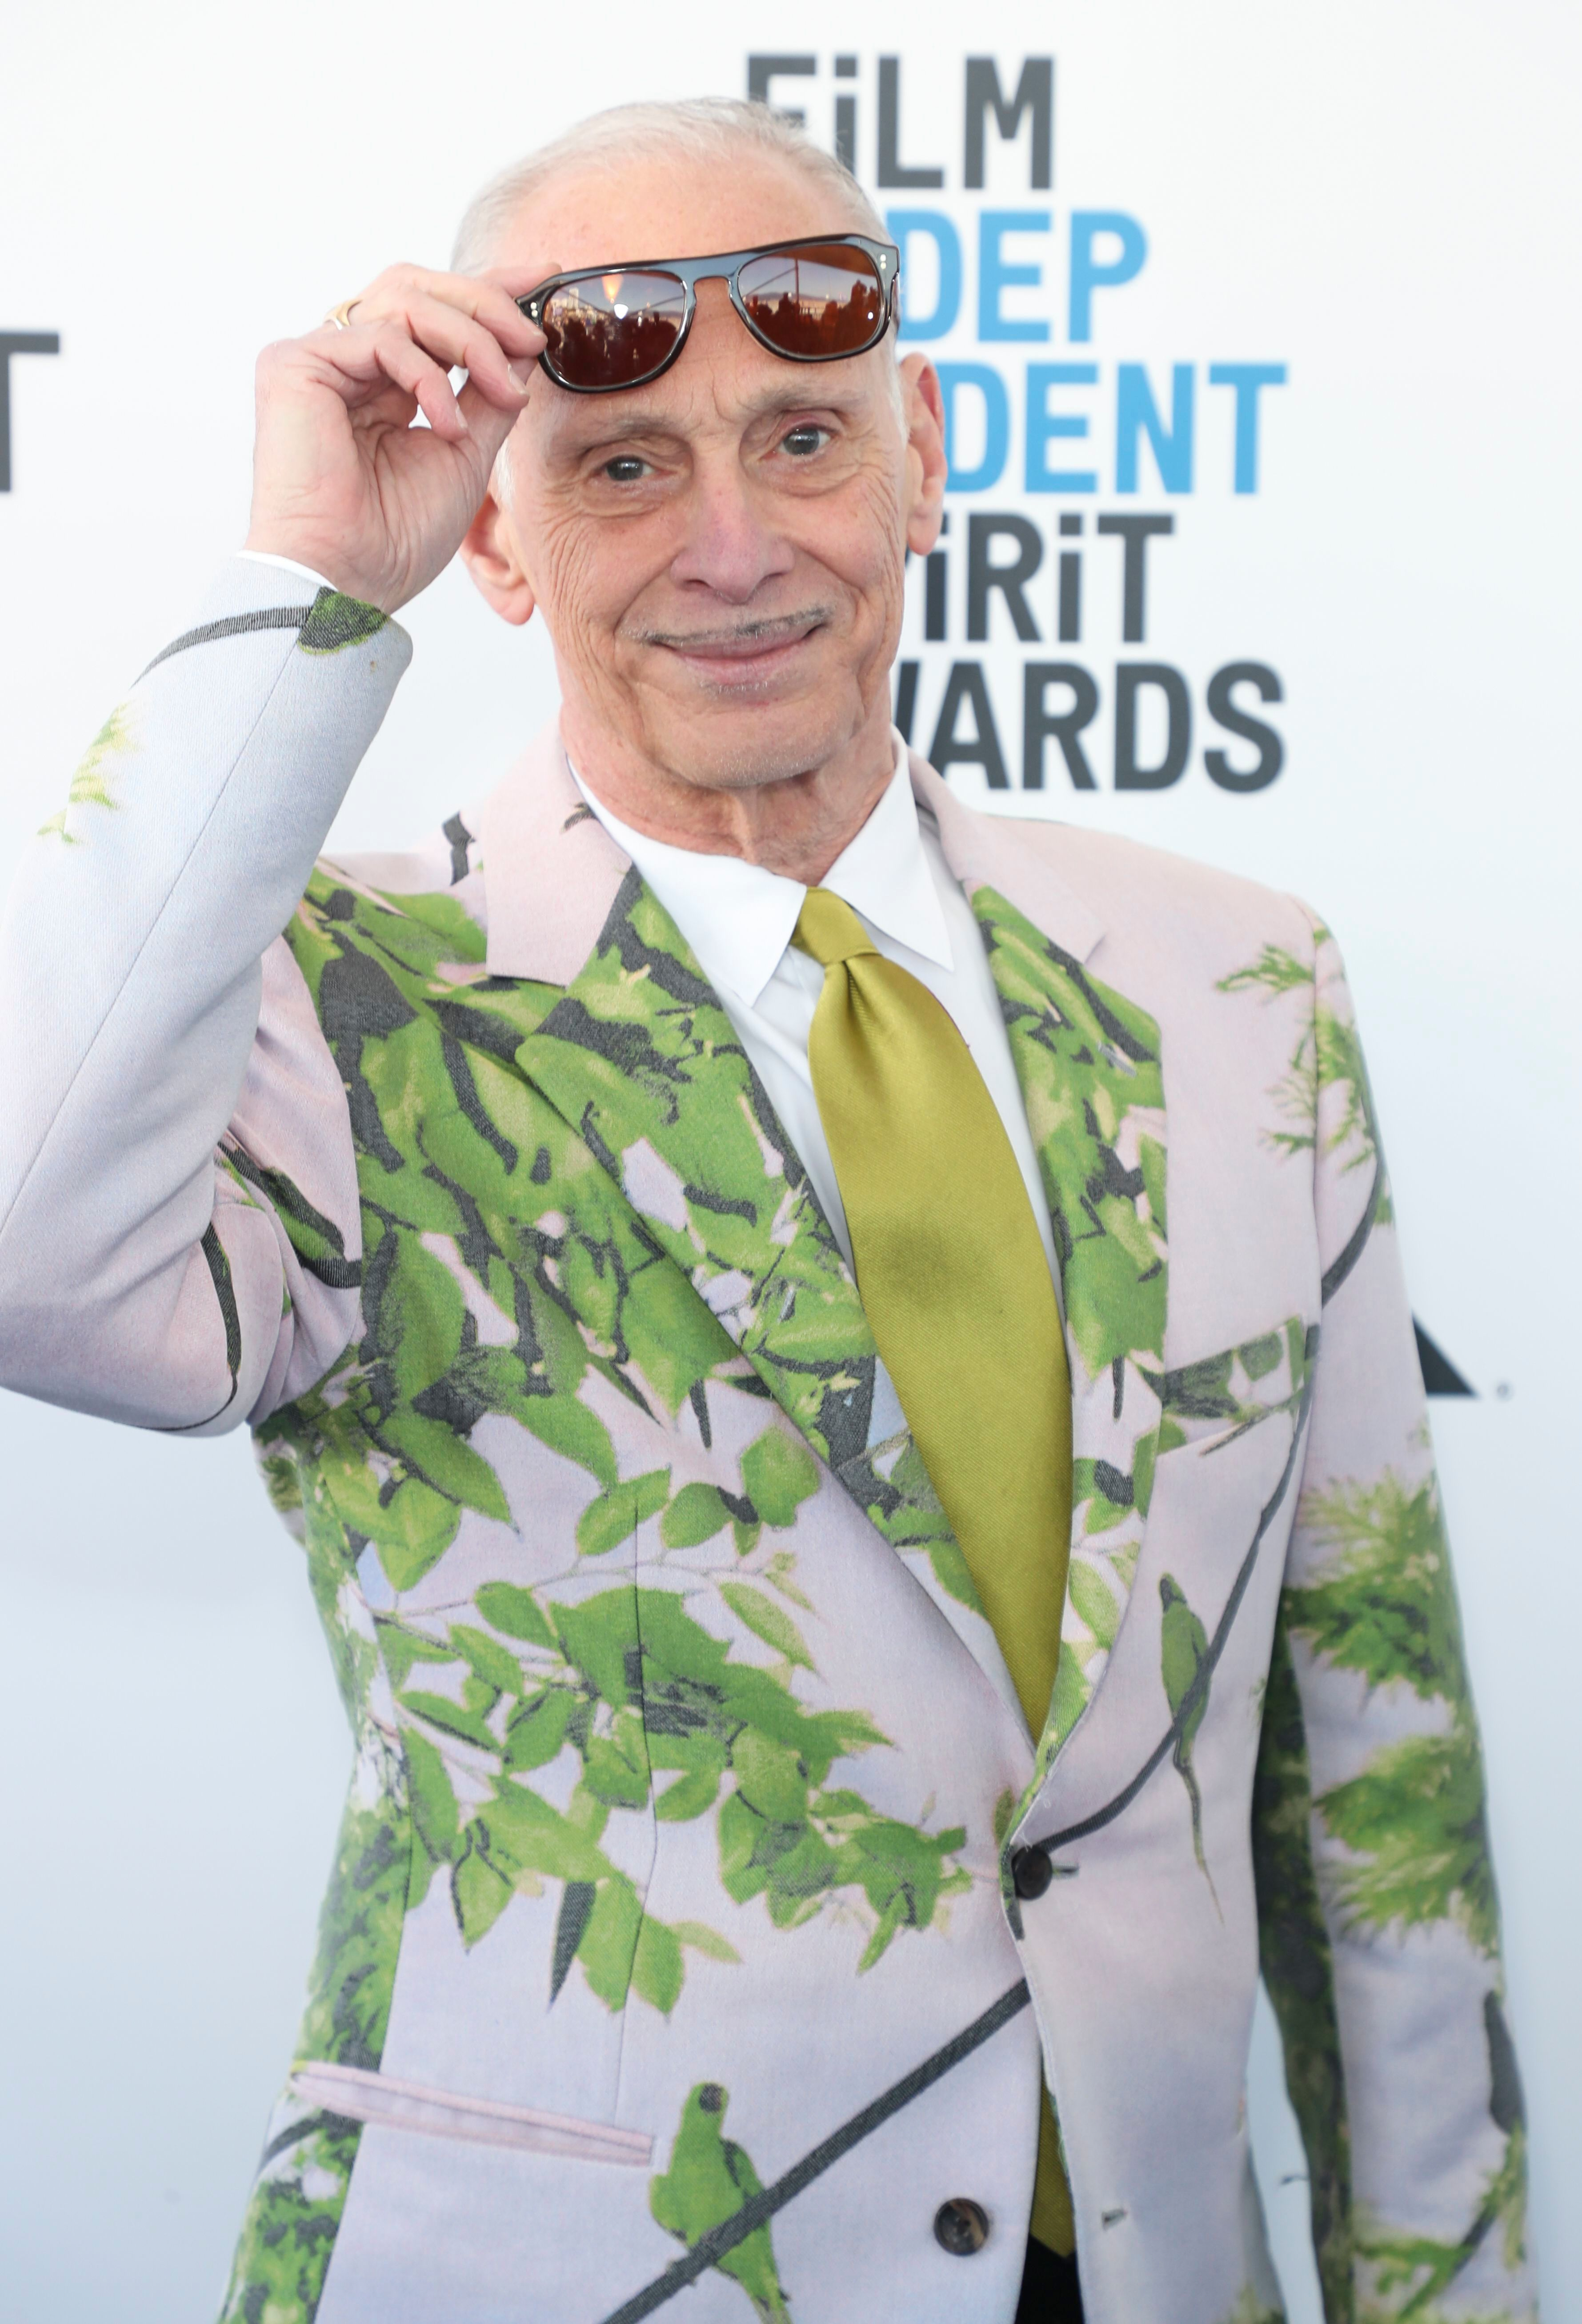 John Waters Addresses Trump's Baltimore Tweets, Alicia Keys andKasseem Dean Buy Works by Tschabalala Self, and More: Morning Links from July 29, 2019